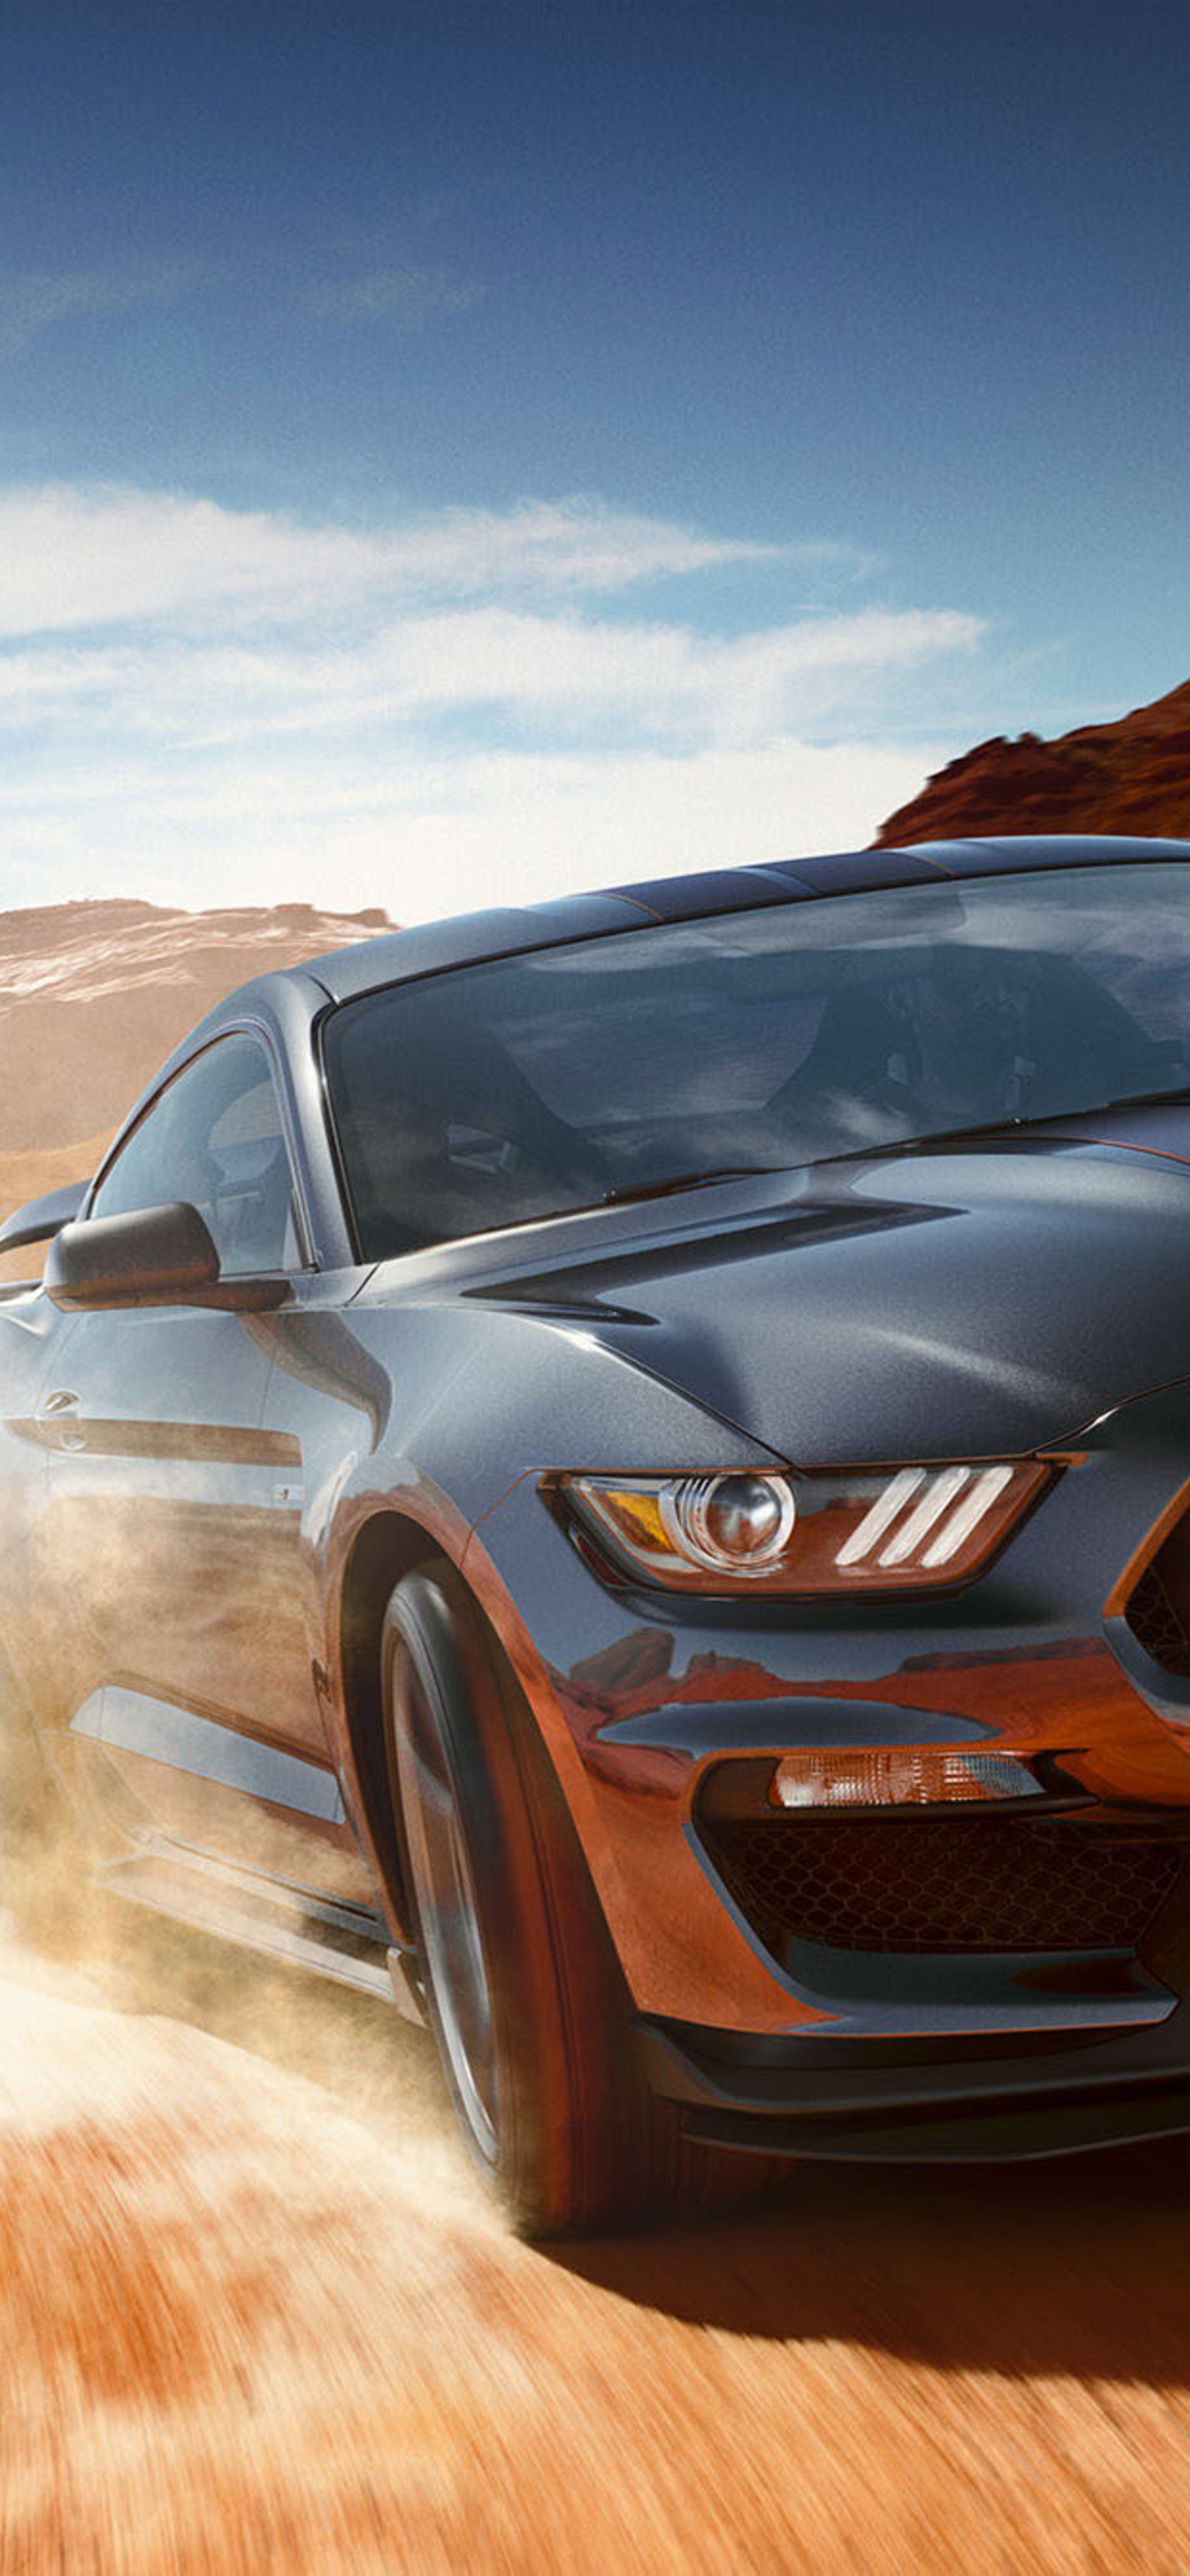 Ford Mustang Wallpaper Iphone